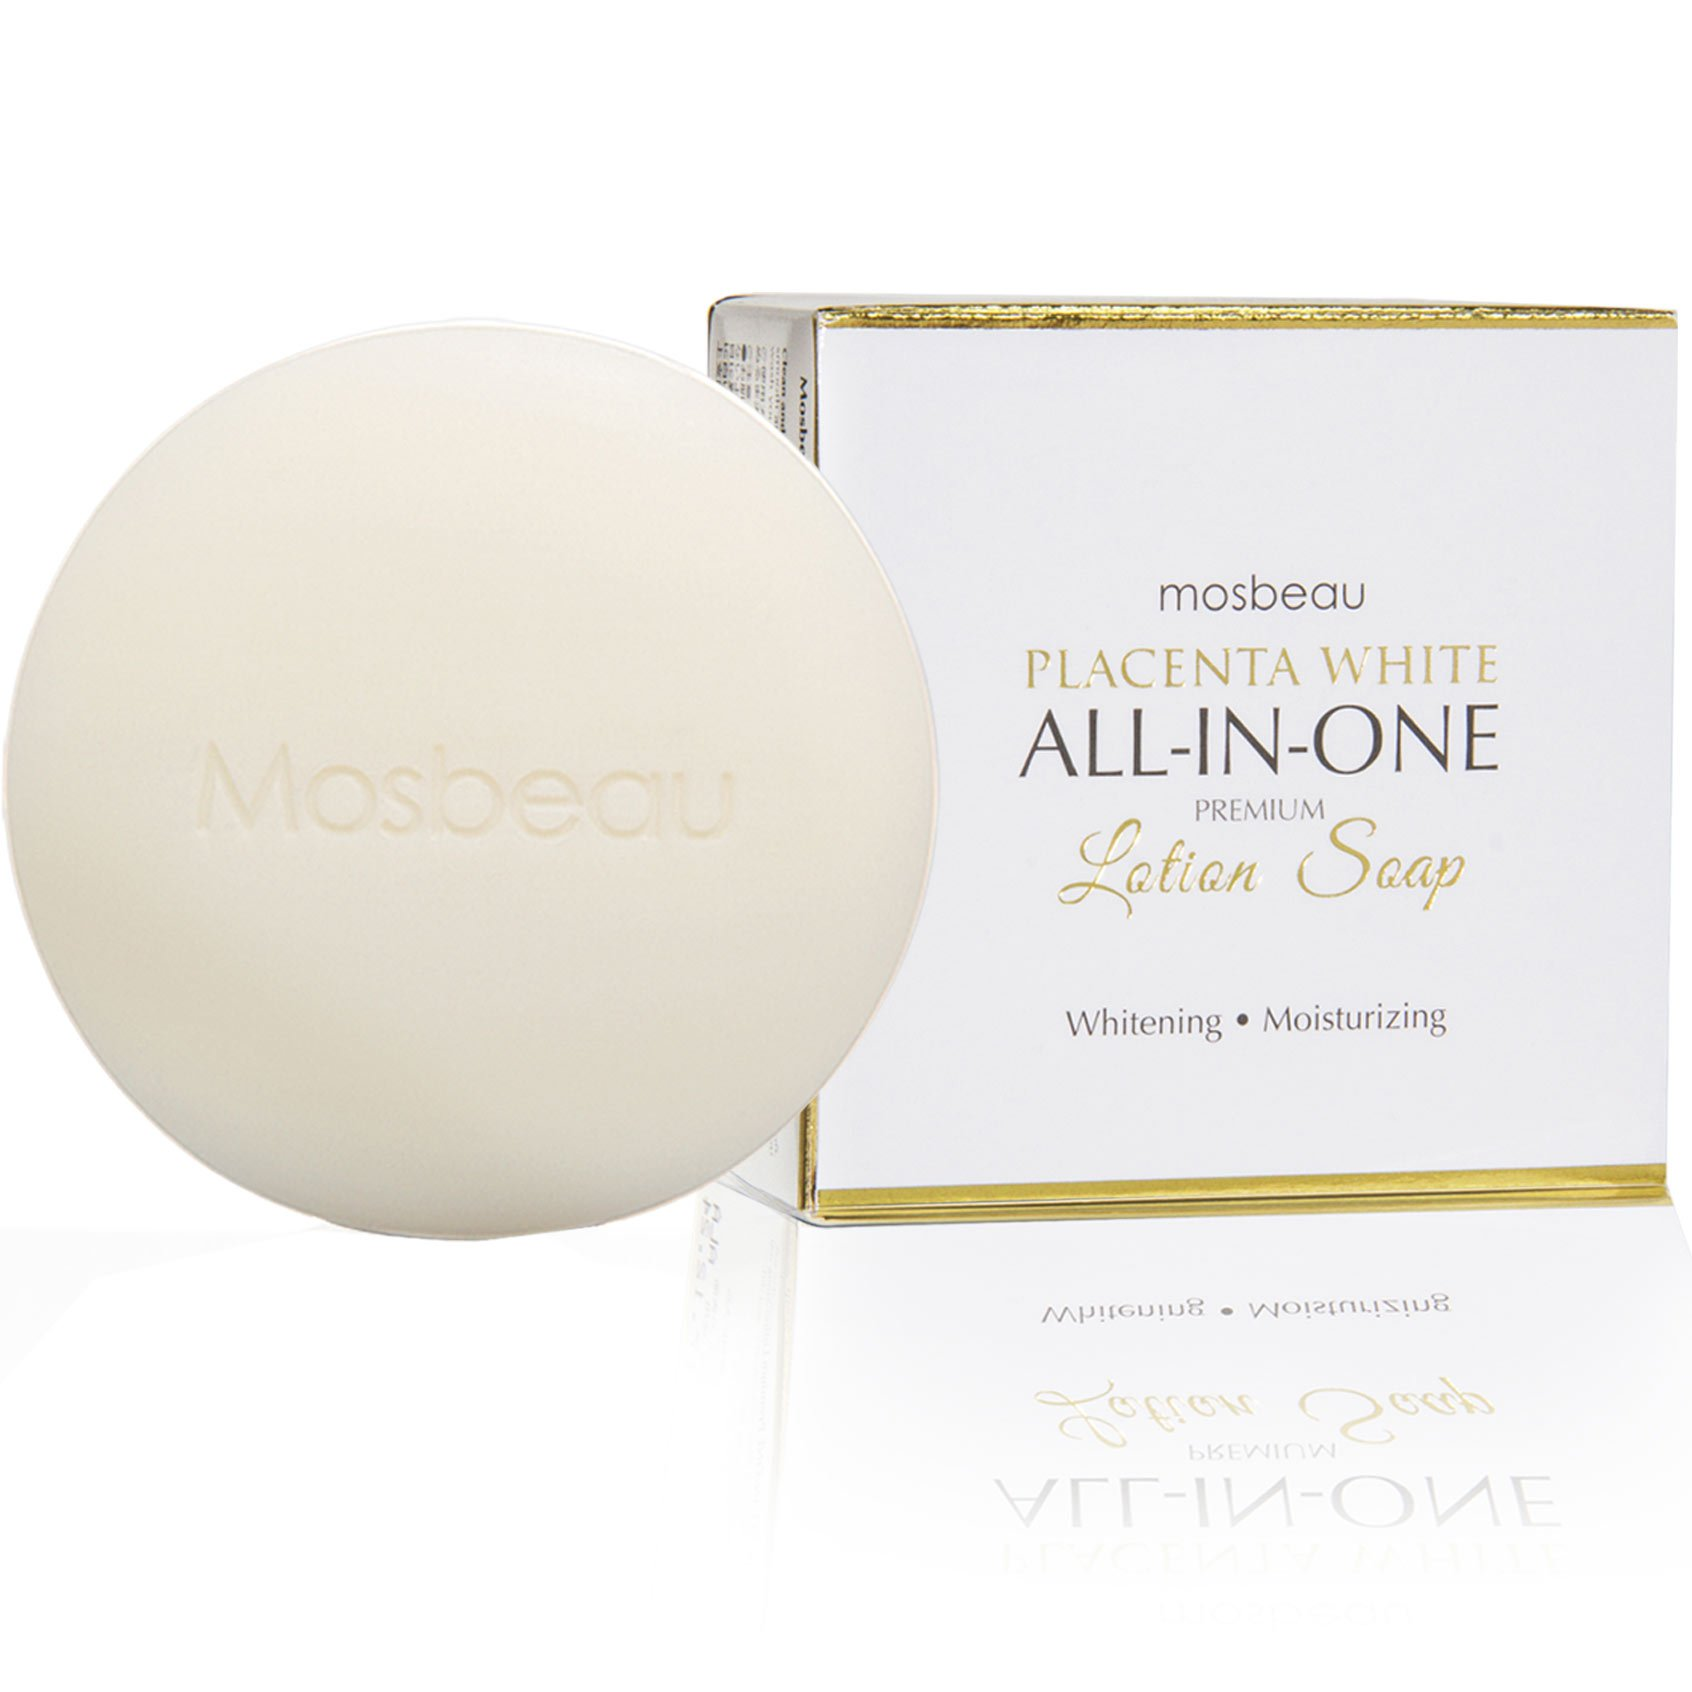 12 Bars of Authentic Mosbeau Placenta White All-In-One Premium Whitening Lotion Soap